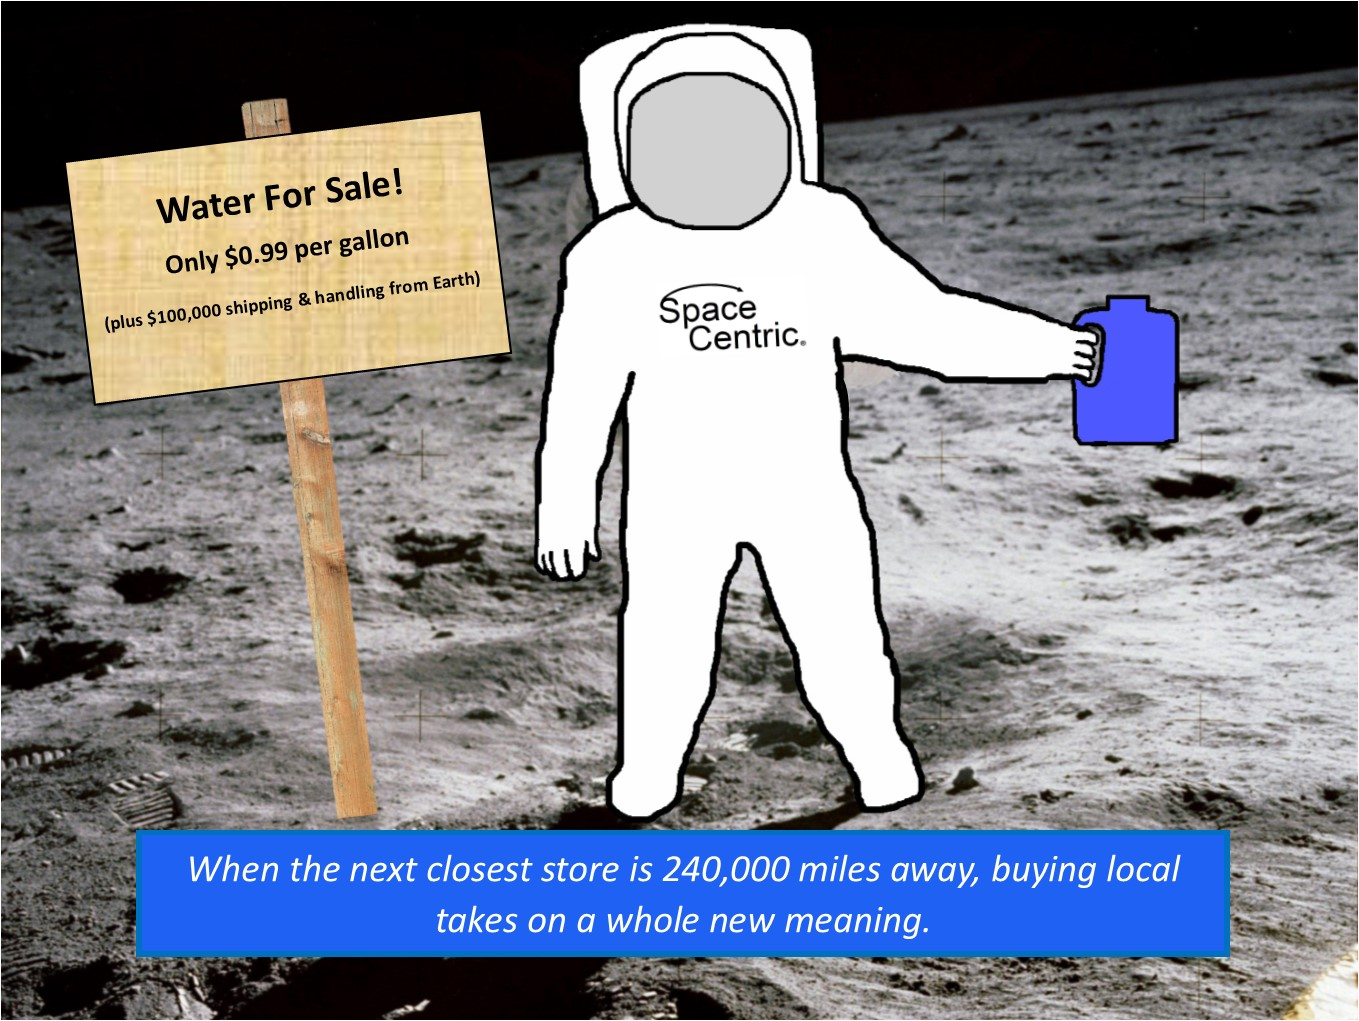 Lunar water for sale. Only $0.99 per gallon, plus $100,000 shipping and handling from Earth. When the next closest store is 240,000 miles away, buying local takes on a whole new meaning. This image illustrates the enormous incentive to learn how to use local lunar resources. Space exploration will have to pay for itself if we want a meaningful presence and future in space. The last 50+ years of budgetary data shows the limits of NASA funding. Congress won't adequately fund Apollo 2.0 or Mars 1.0. That's why creating an in-space economy based on these local space resources is paramount and the most realistic path forward. A blue-collar future in space IS our future in space.